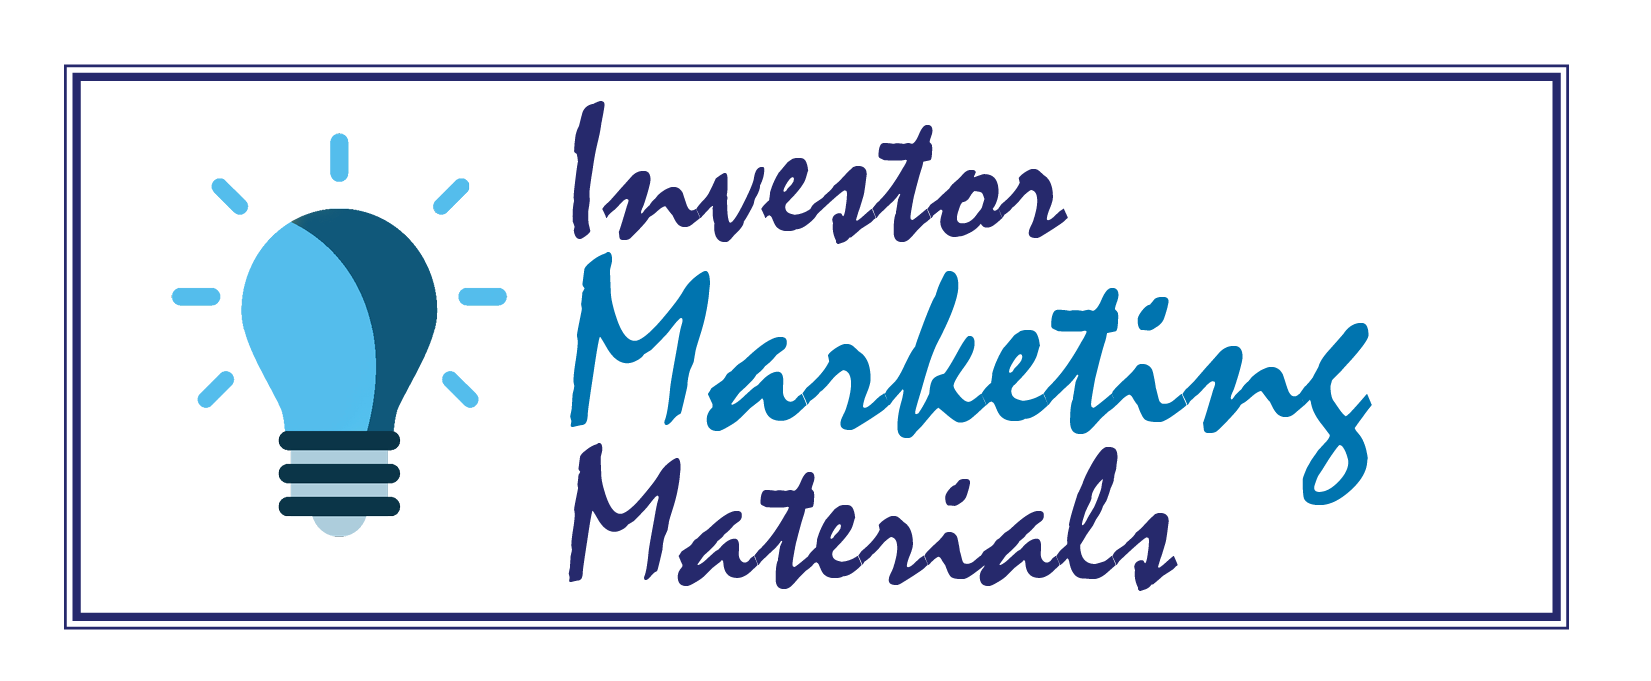 Investor Marketing Materials